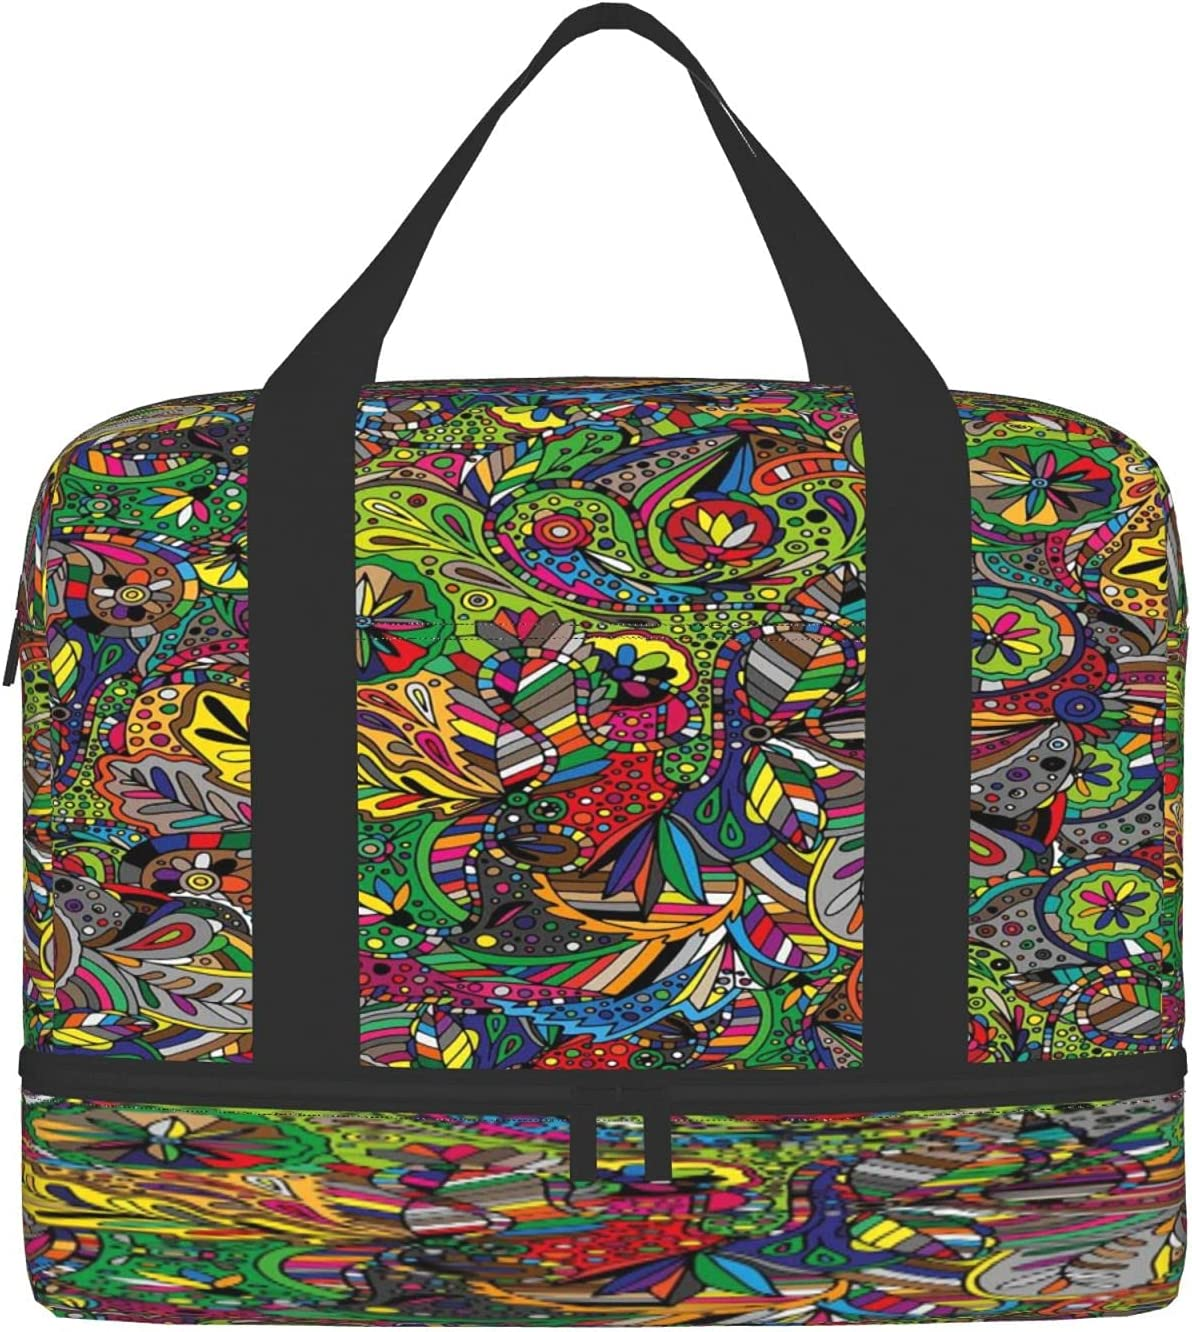 Sports Gym Bag with Max 79% We OFFer at cheap prices OFF Wet Shoes Travel Compartment Pocket Duffel